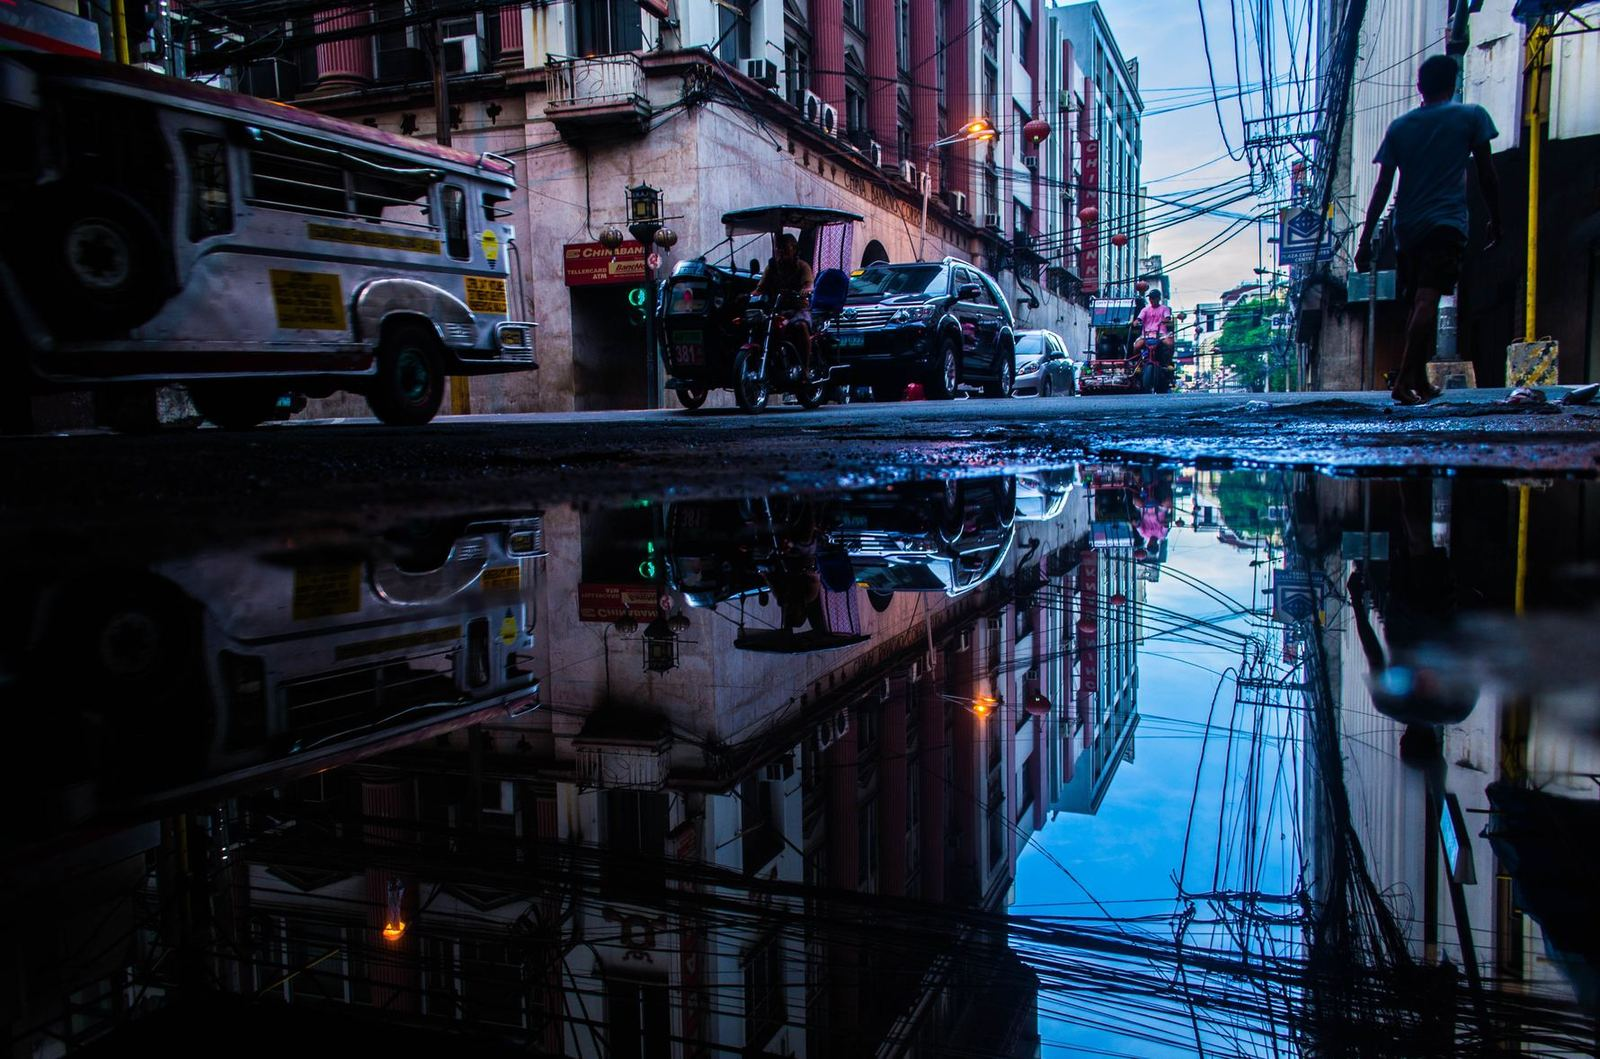 philippine federalism reflection of a street in the philippines in a puddle